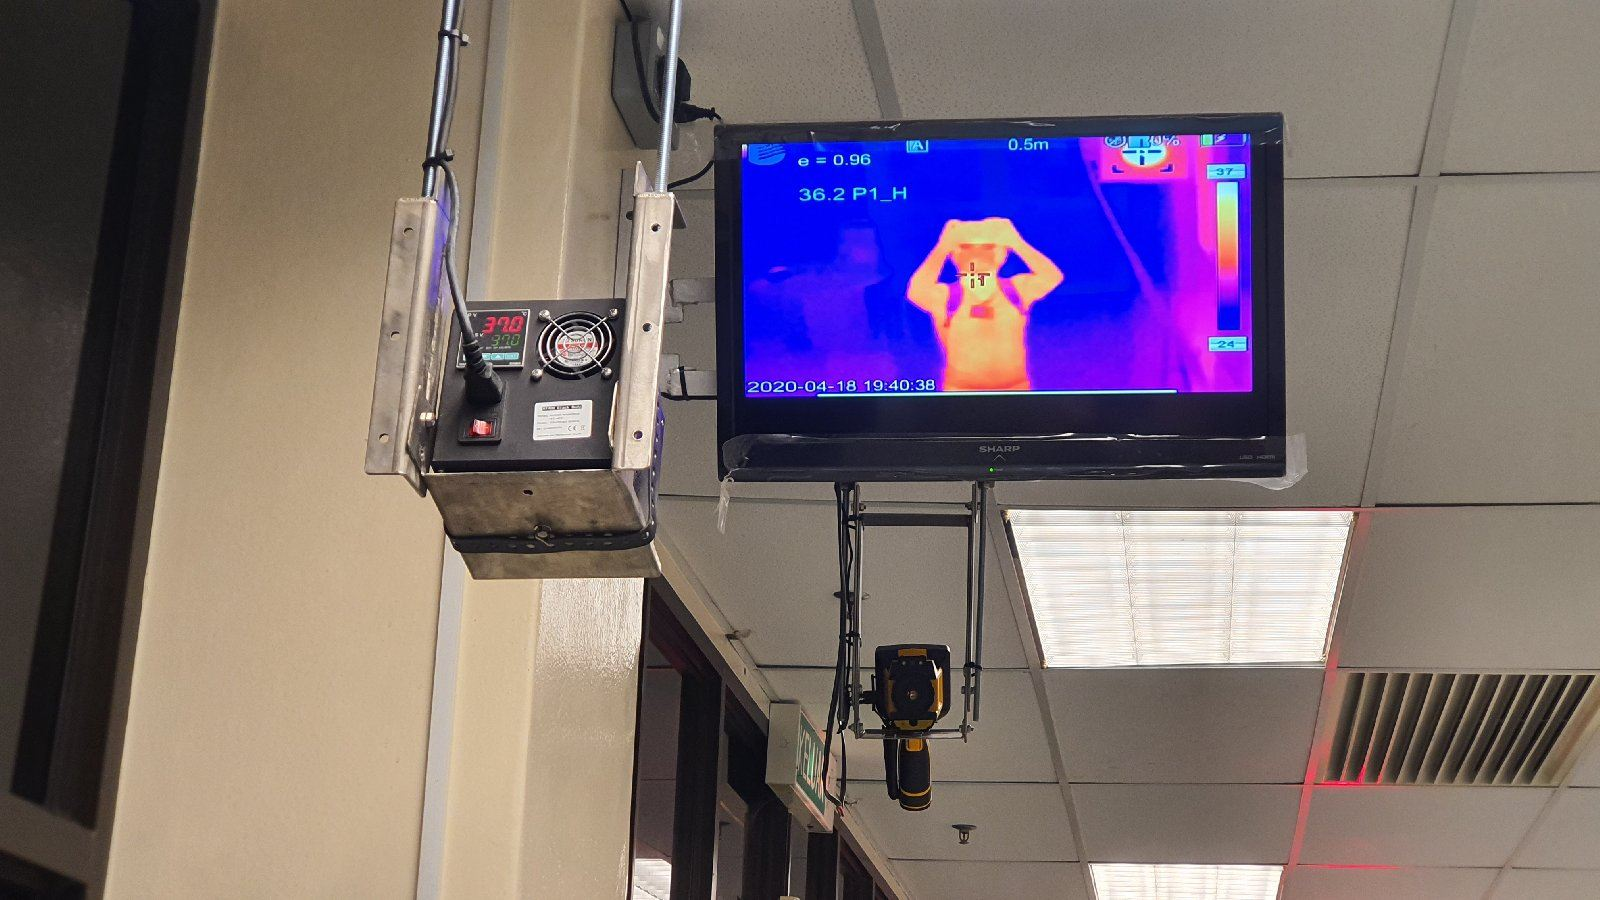 TE-W300H Thermal Imaging Camera supplied to Molnlycke